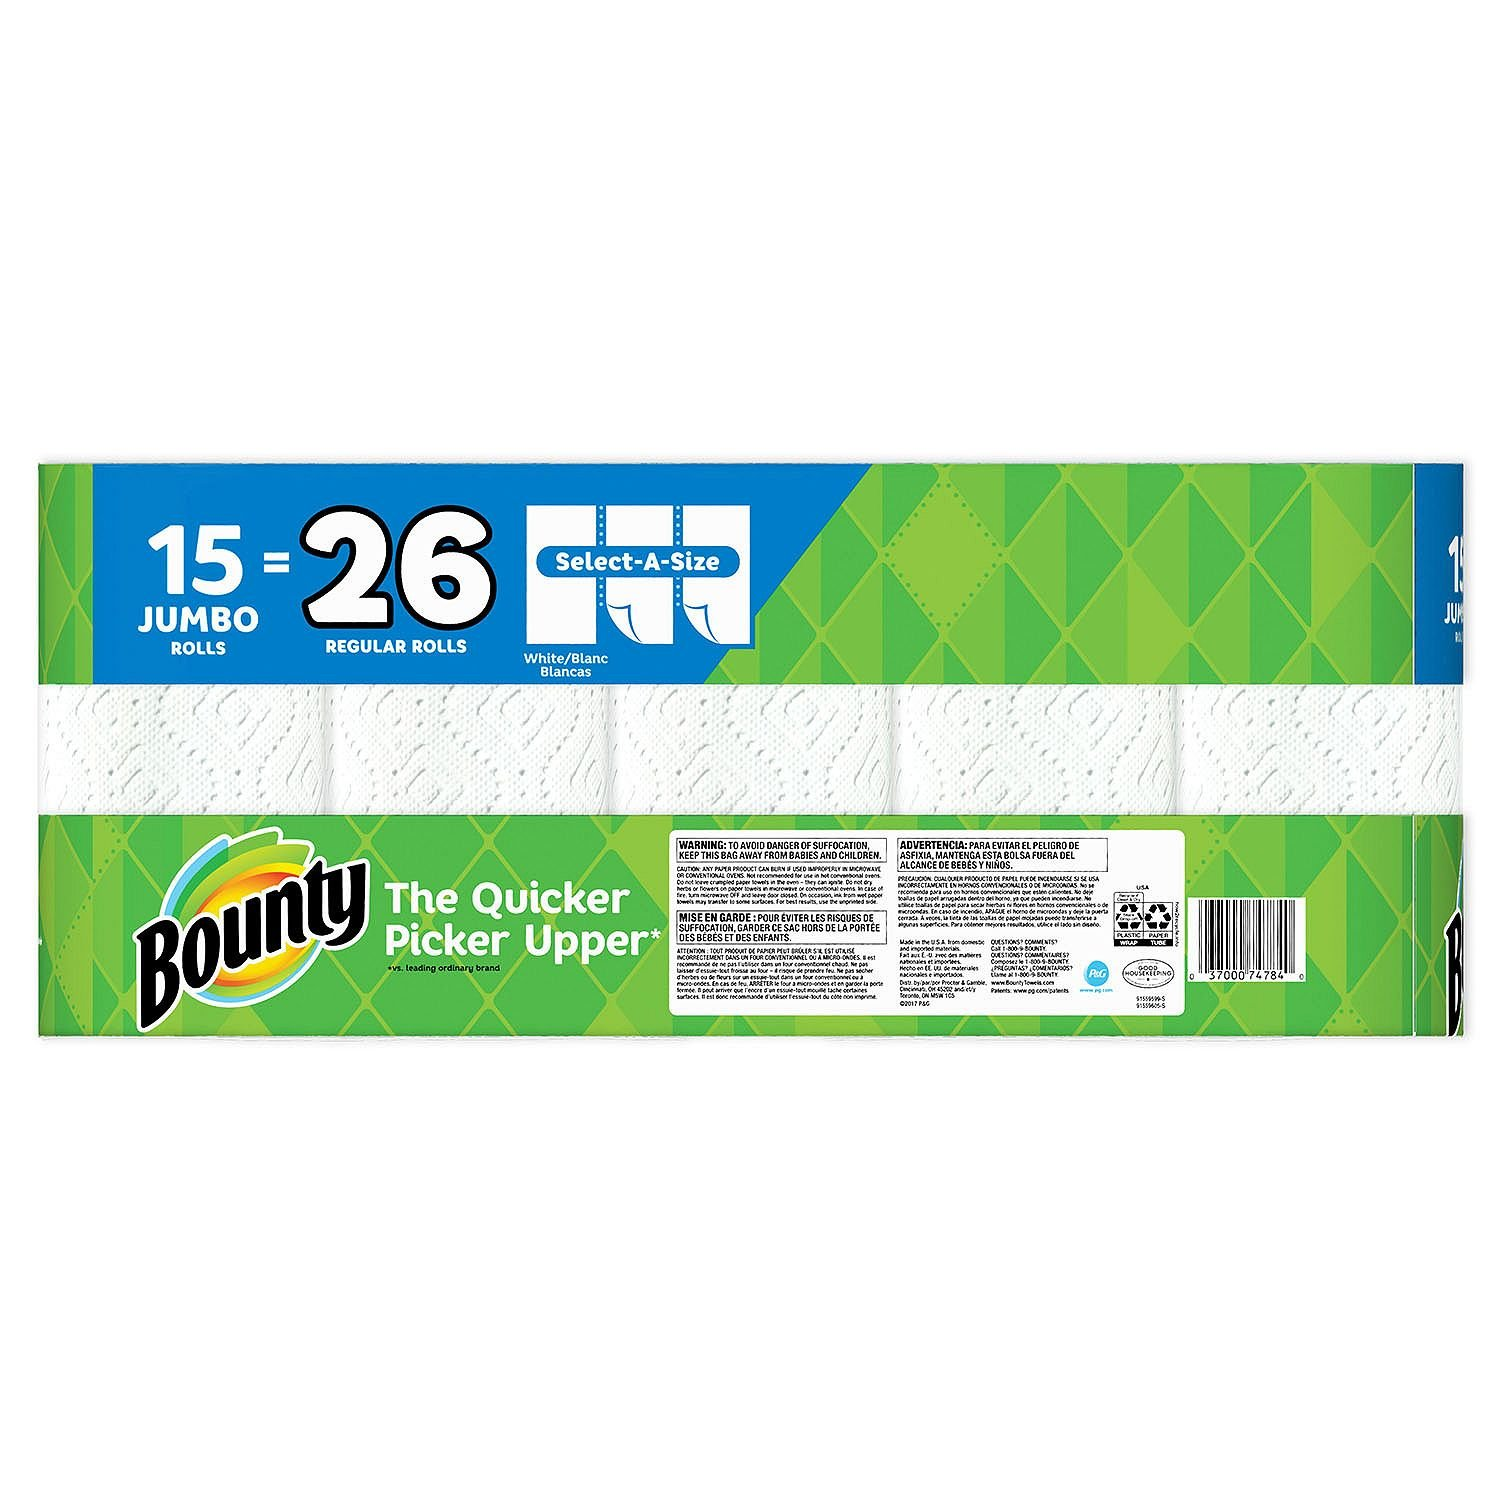 Bounty Select-a-Size Paper Towels, White, 15 Jumbo Rolls: Amazon.com: Industrial & Scientific